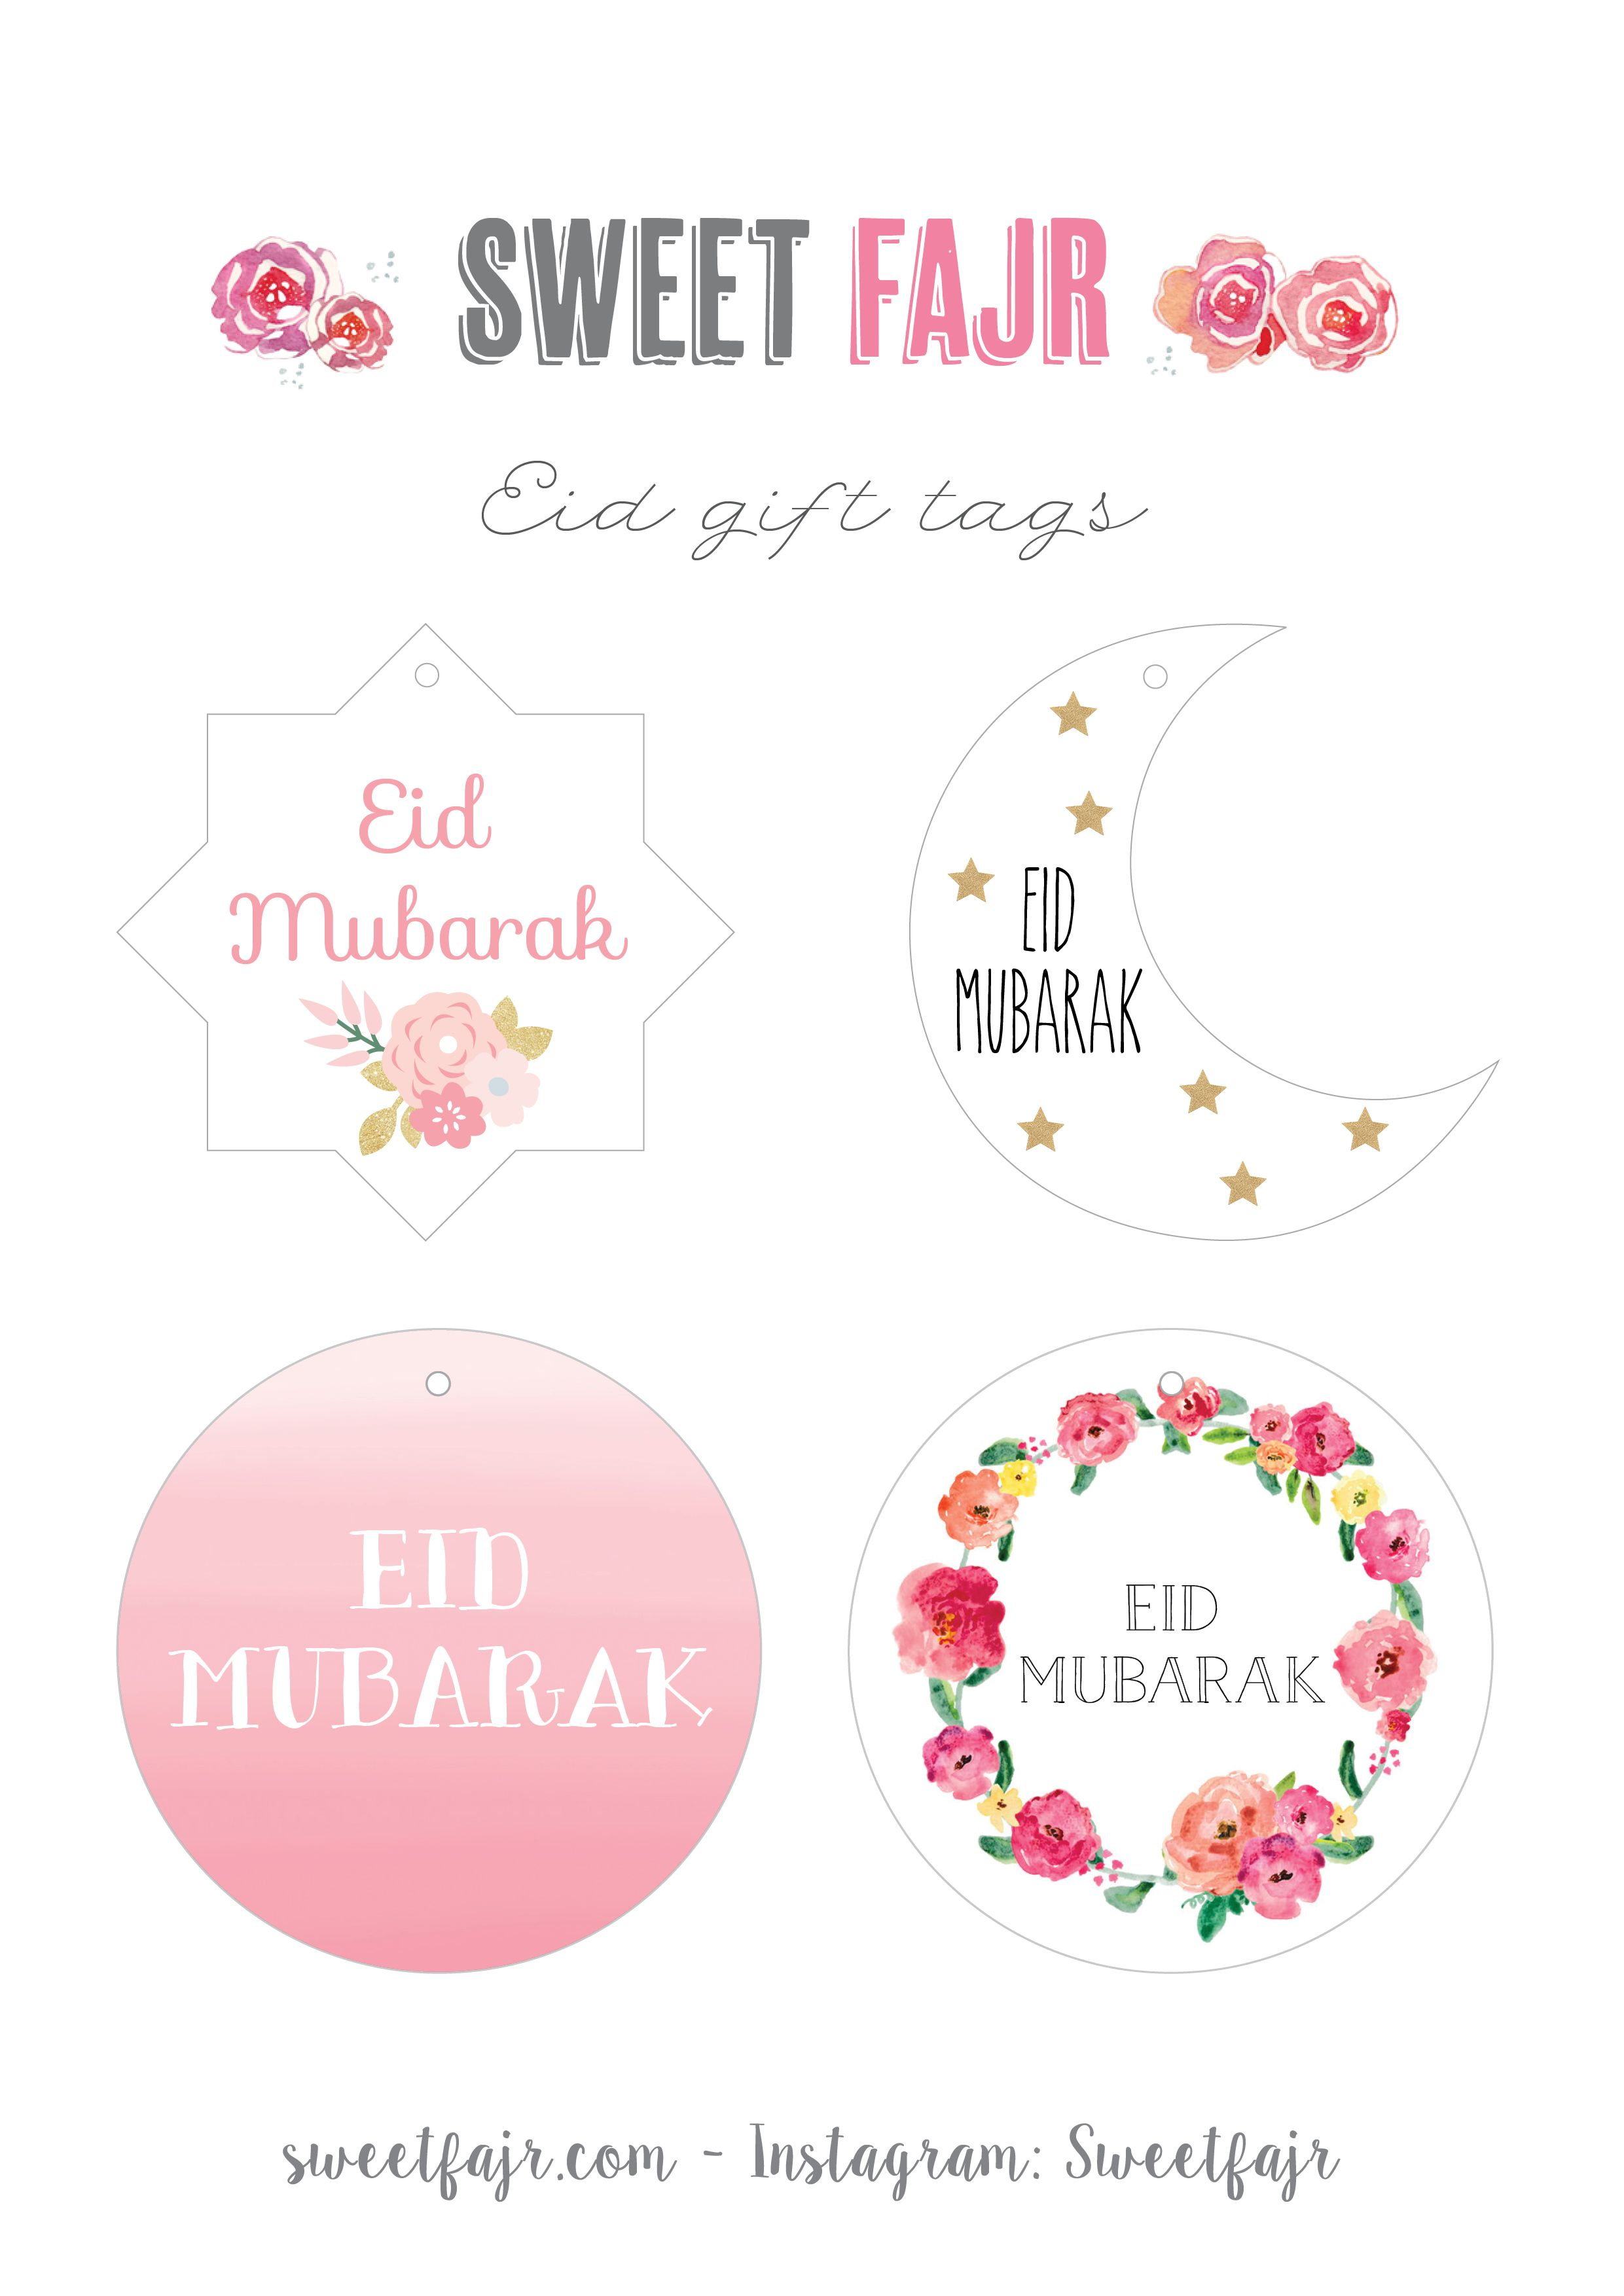 Preparing Some Crafts Gifts Or Cakes For Eid Free Printable Eid Gift Tags And Cake Toppers Fetes Islamiques Decorations Eid Eid Moubarak